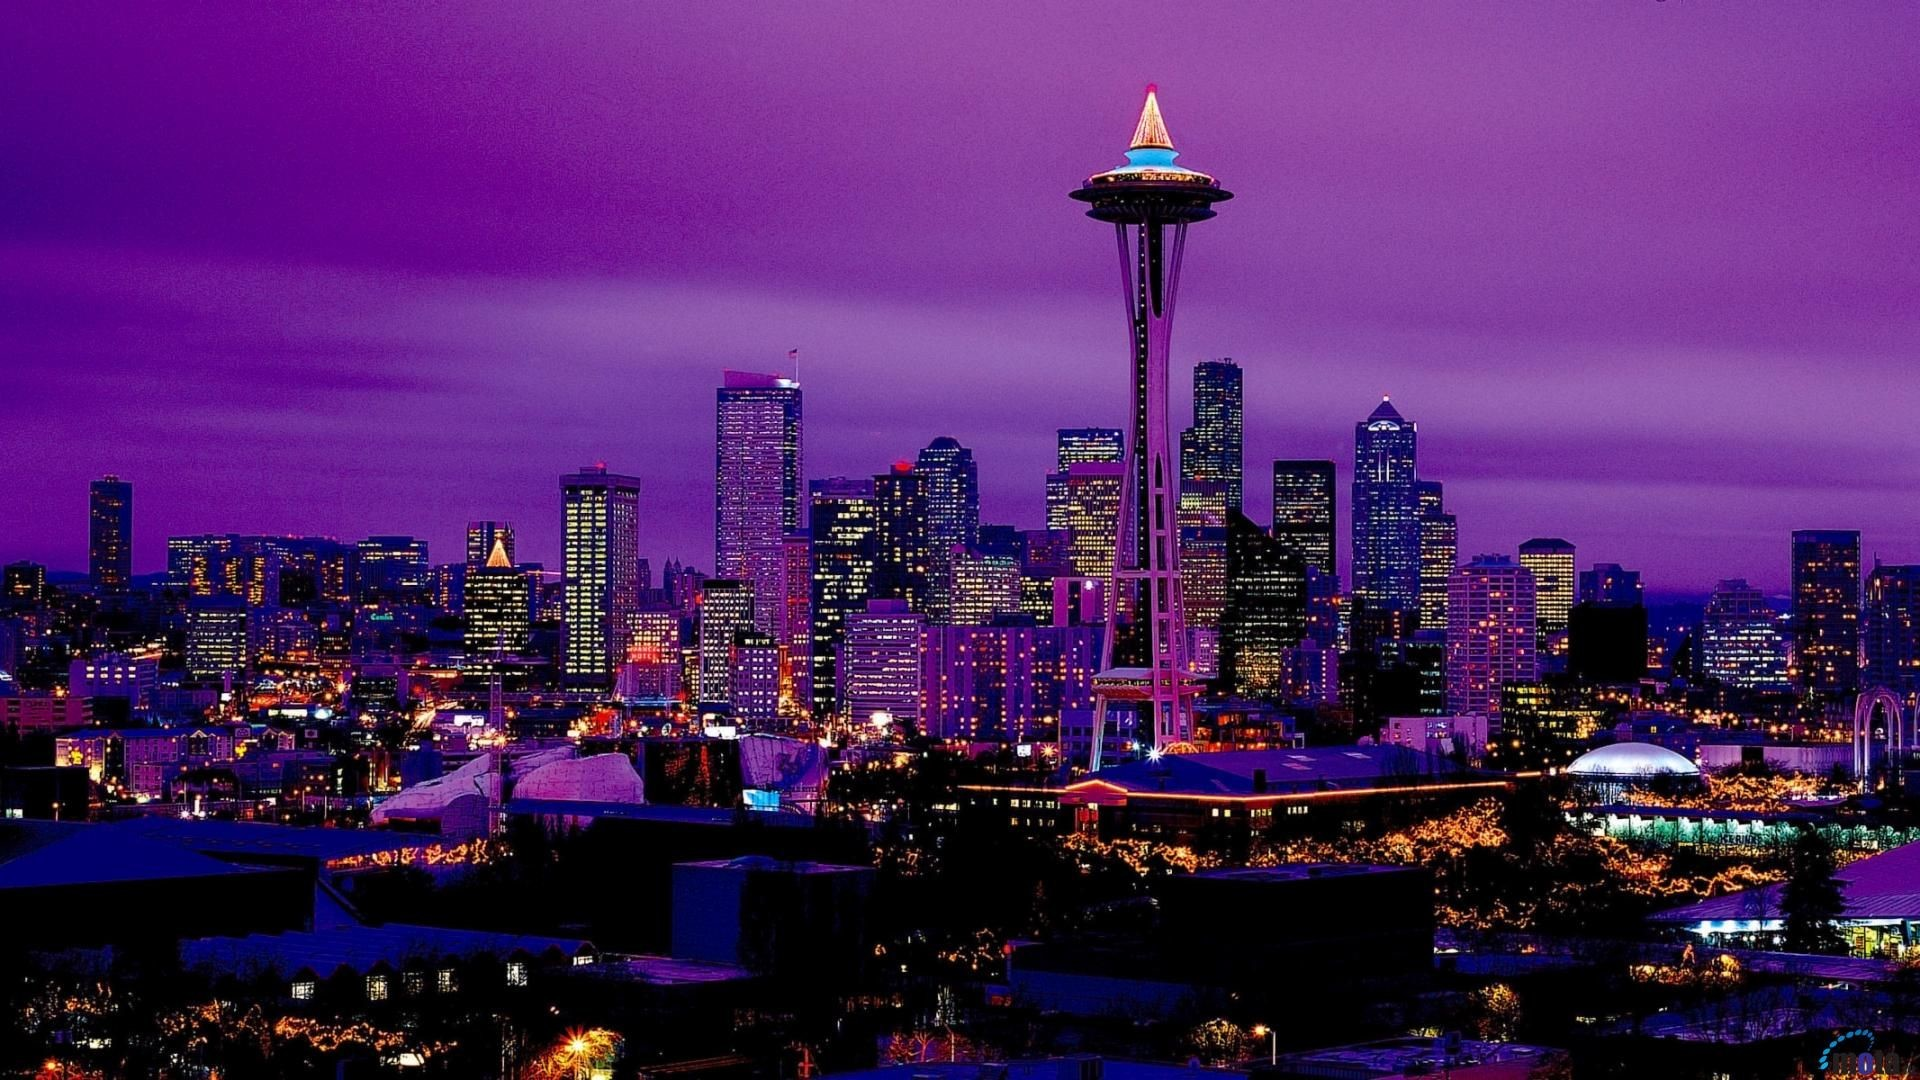 Res: 1920x1080, HD Seattle Skyline Wallpapers, 42 Desktop Images of Seattle